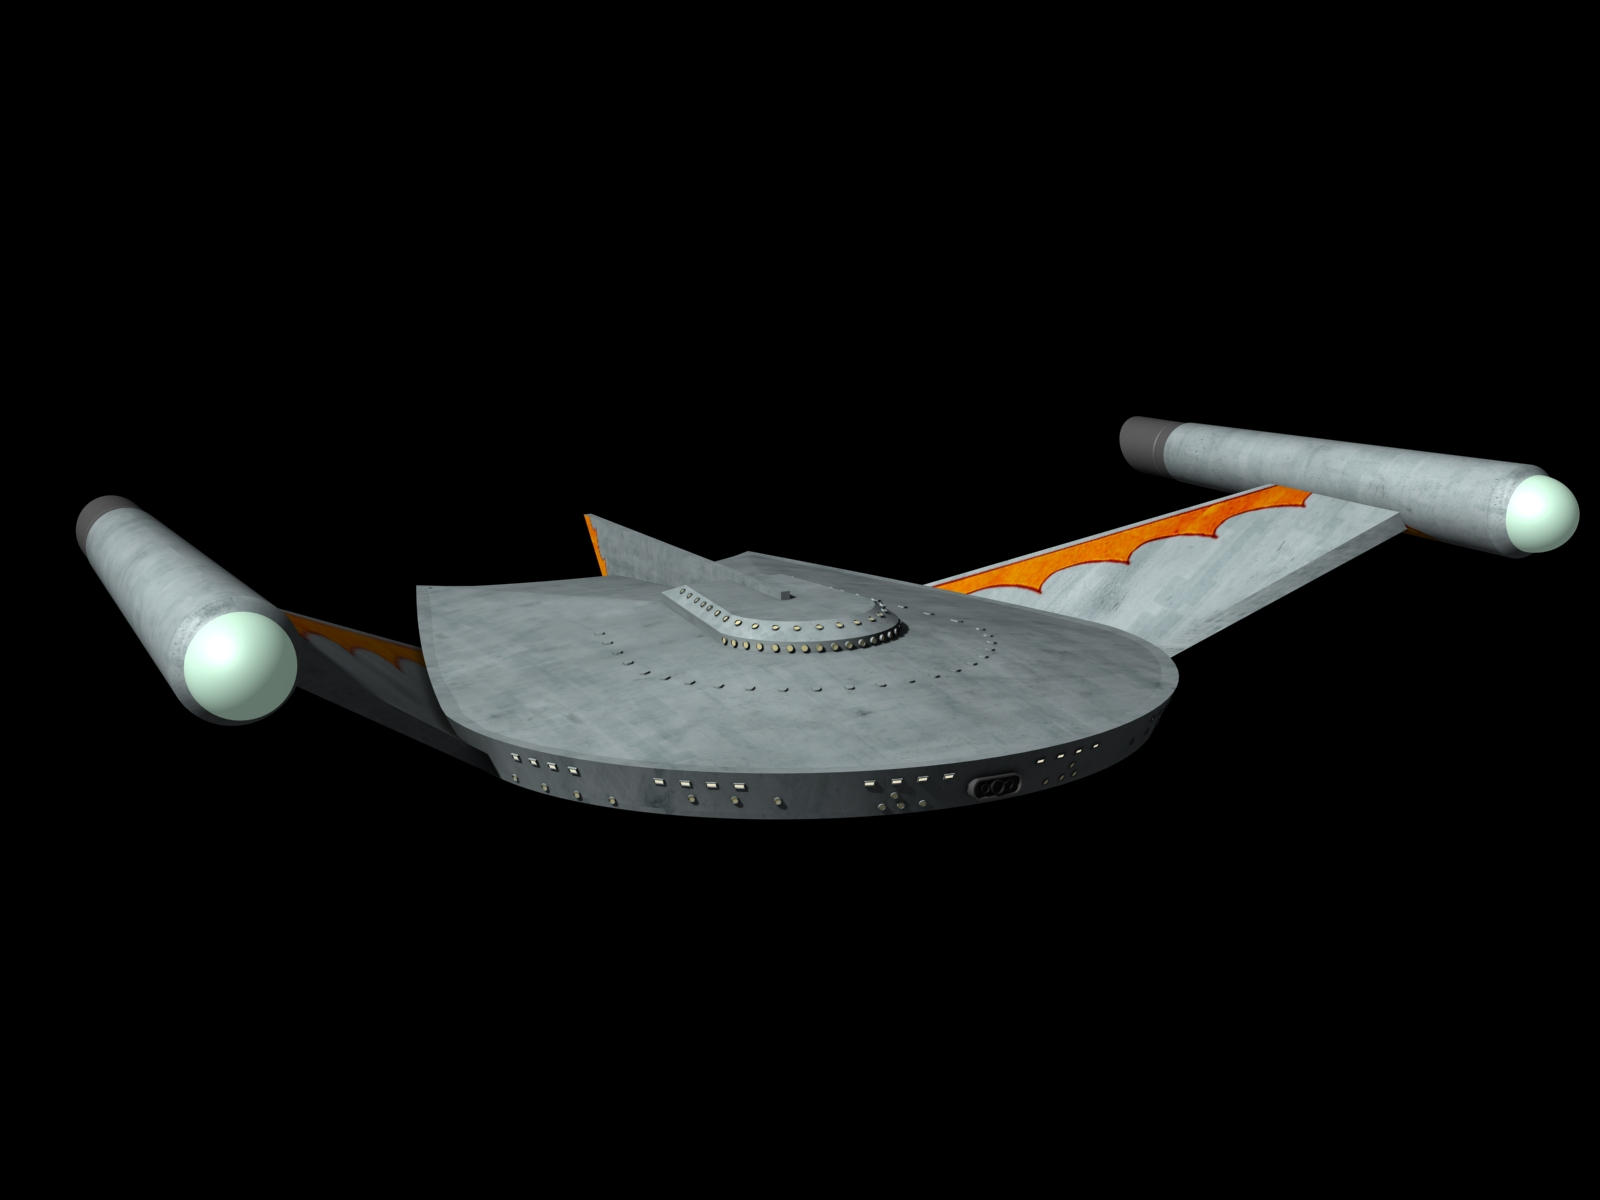 romulan_bird_of_prey_by_metlesitsfleetya